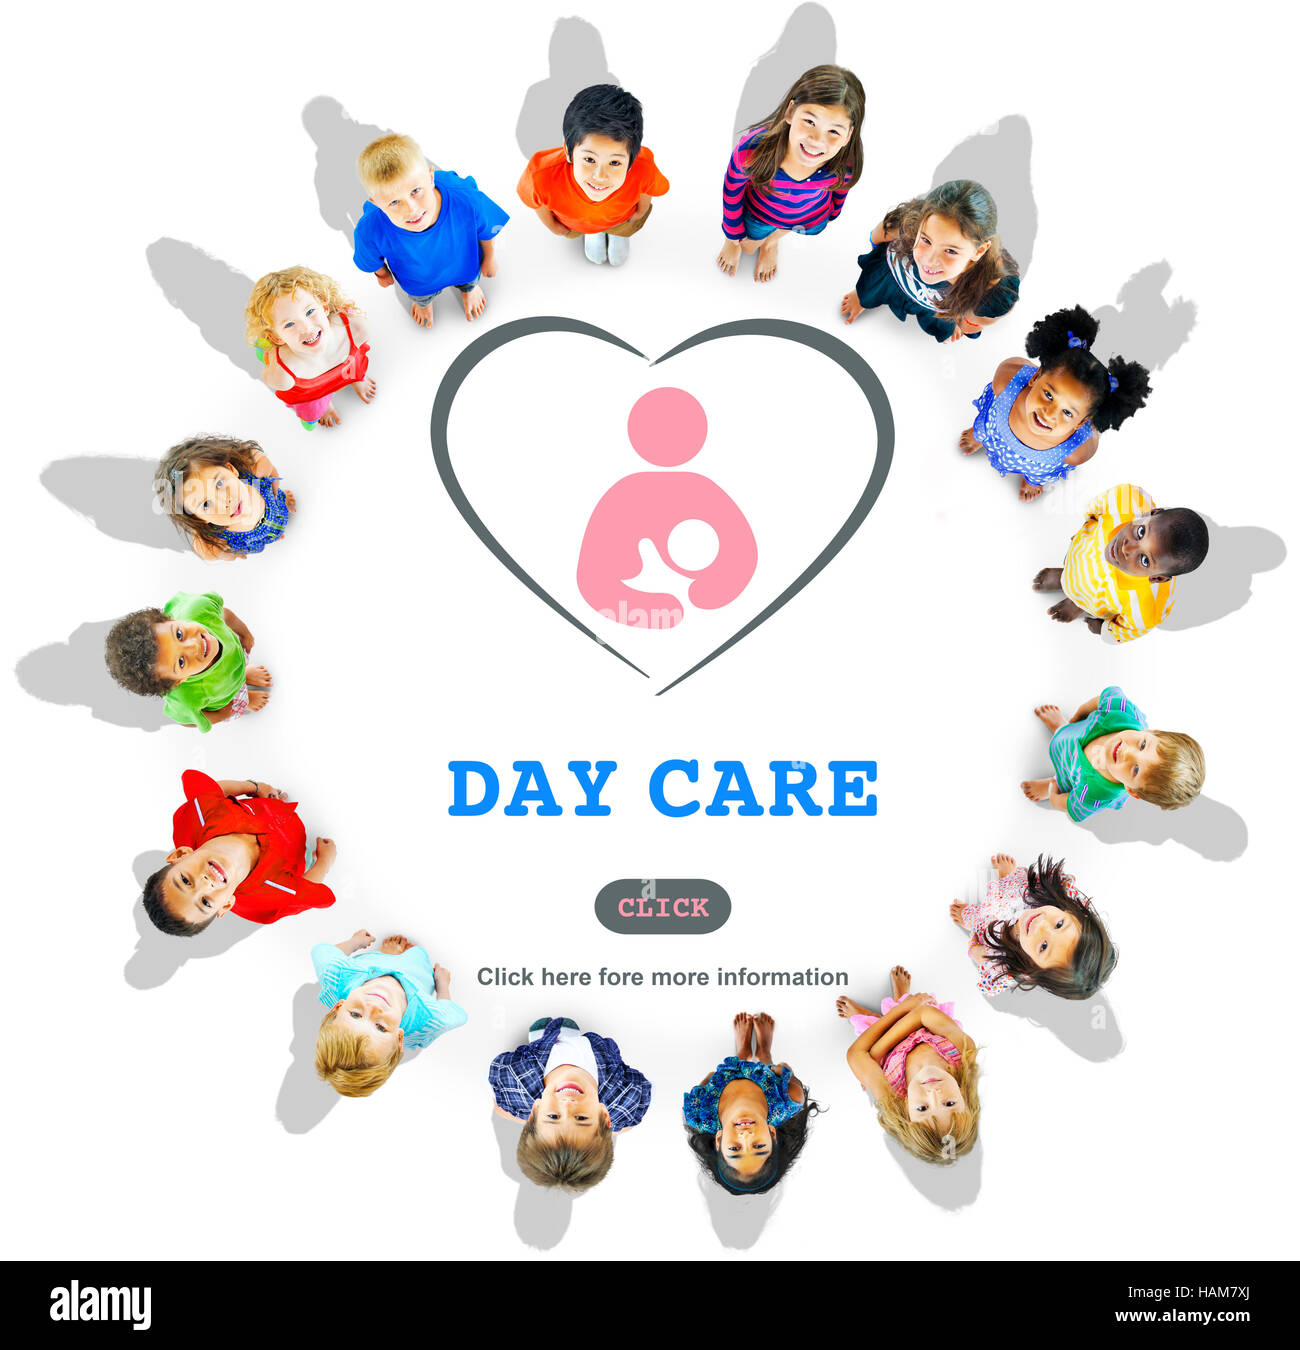 Day Care Babysitter Nanny Nursery Love Motherhood Concept - Stock Image